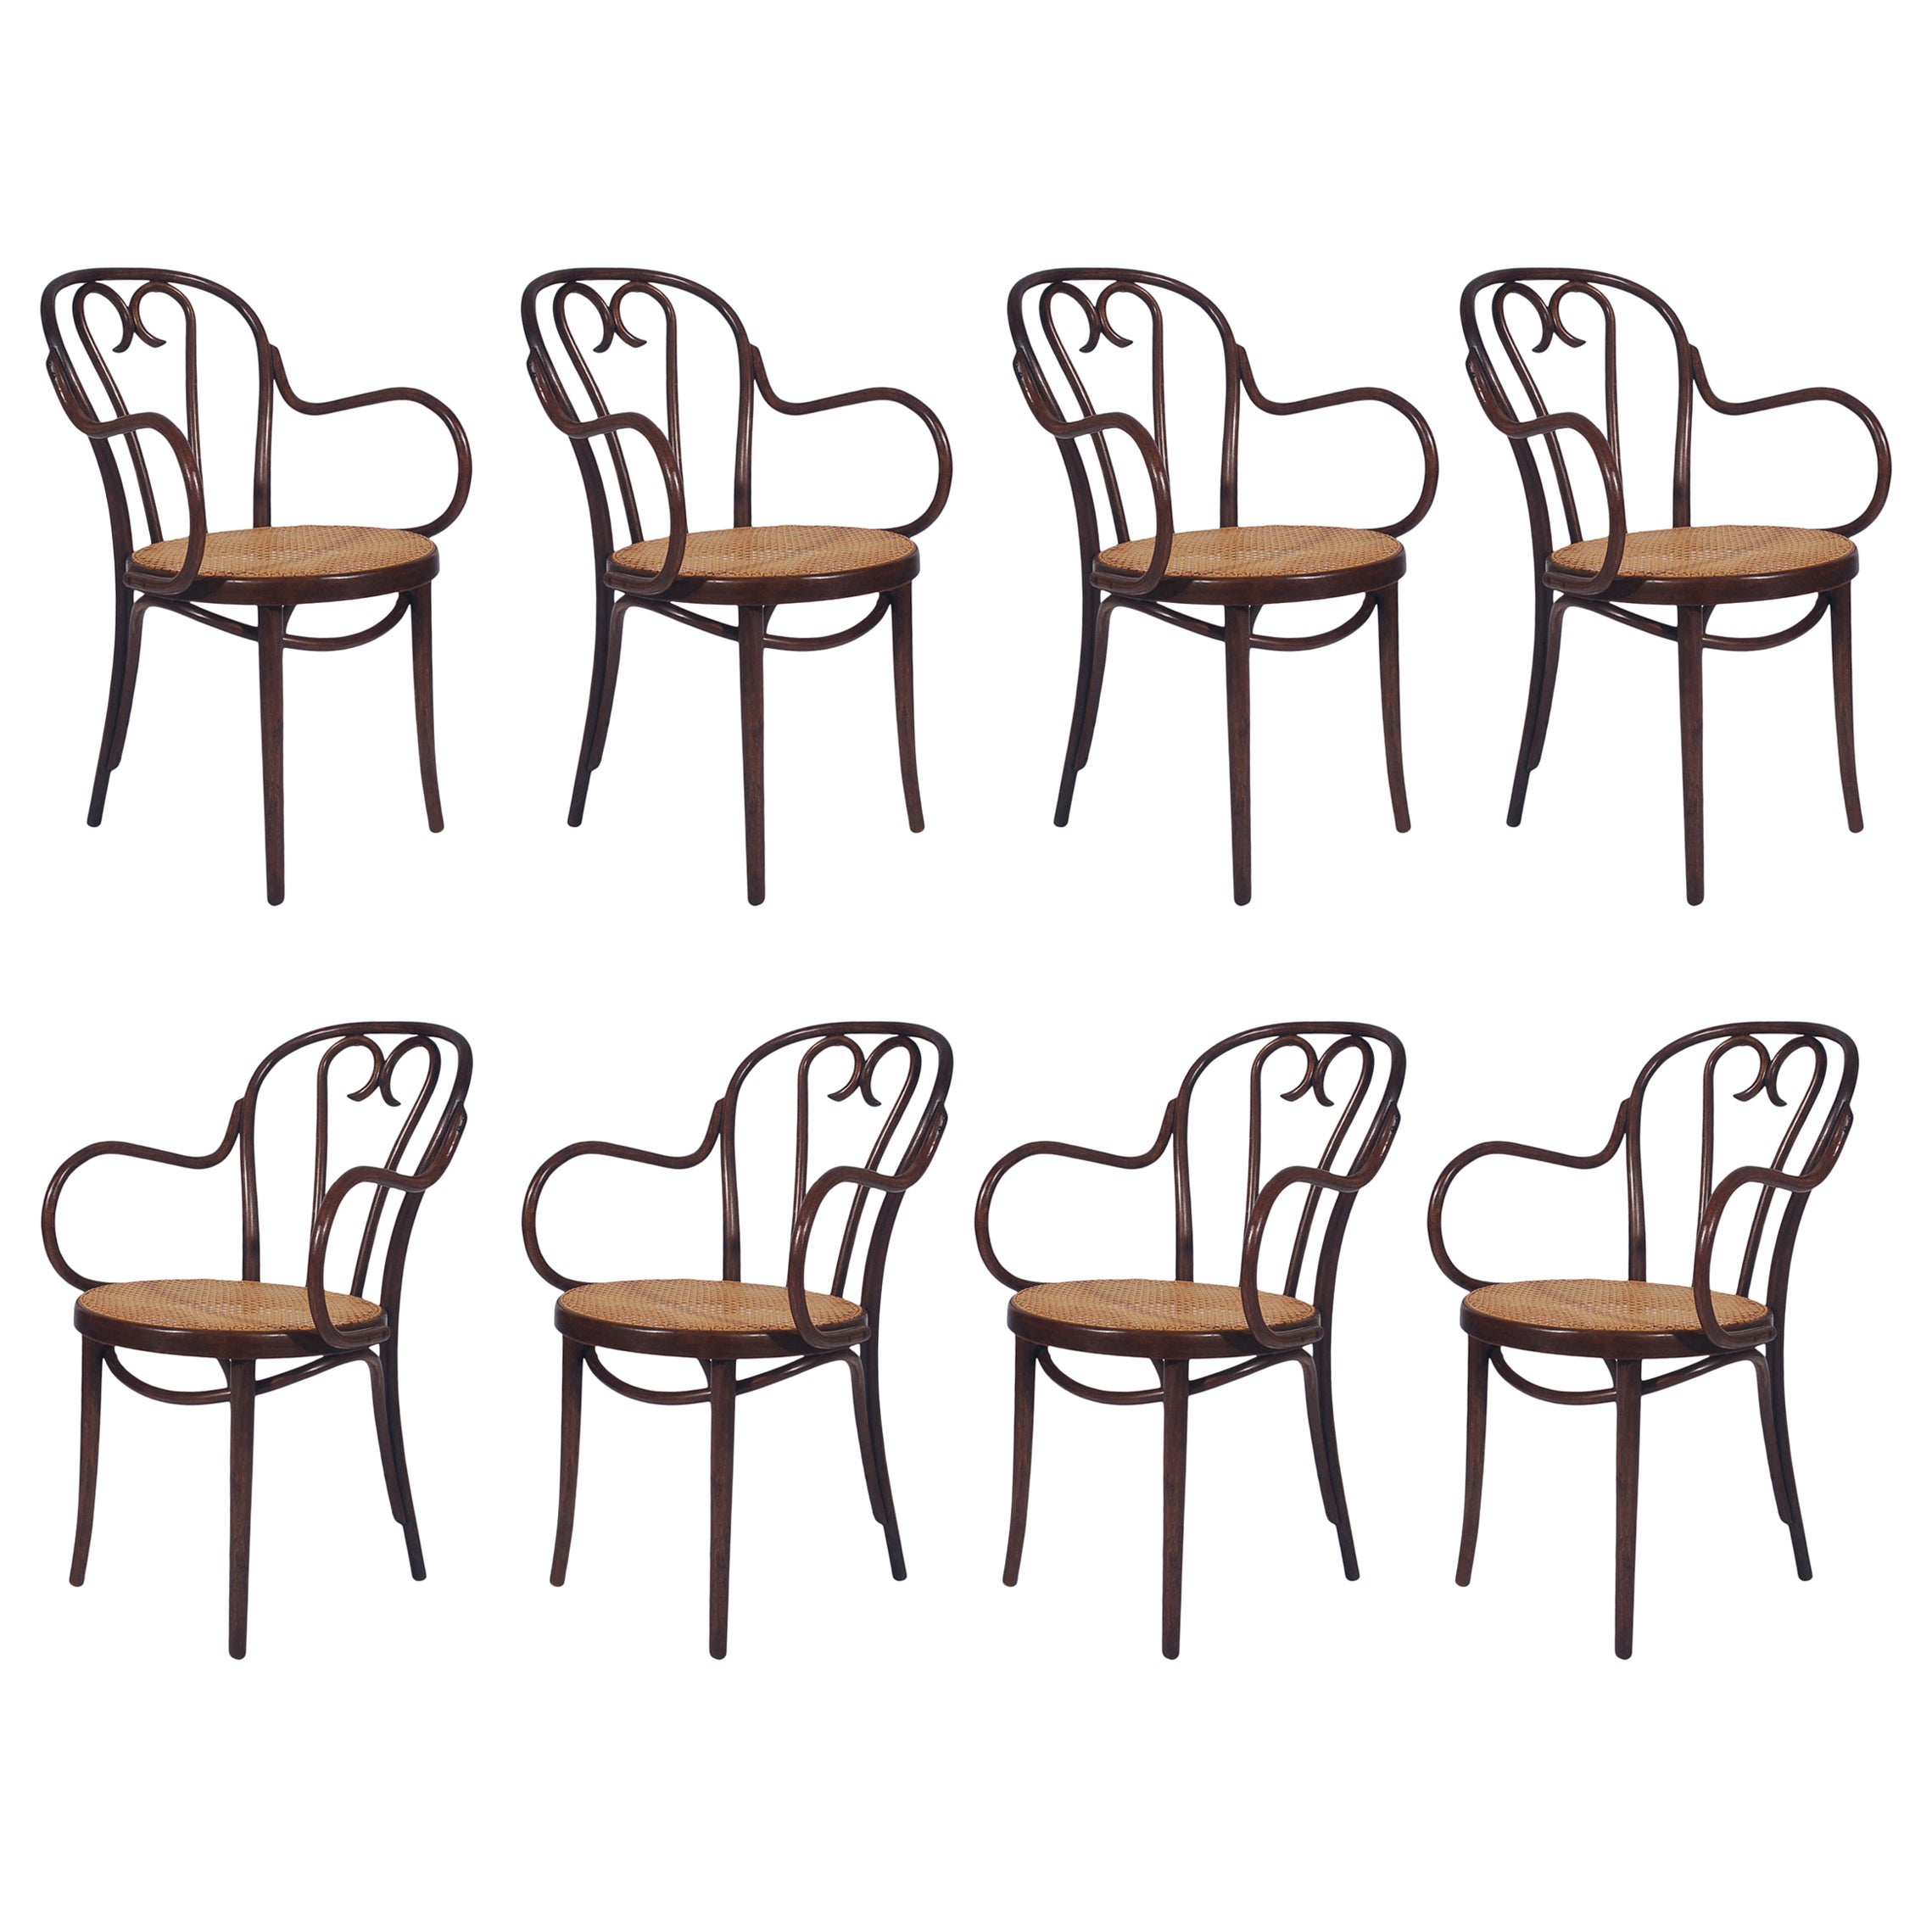 Vintage Set of Eight Bentwood and Cane Seat Armchair Dining Chairs by Thonet